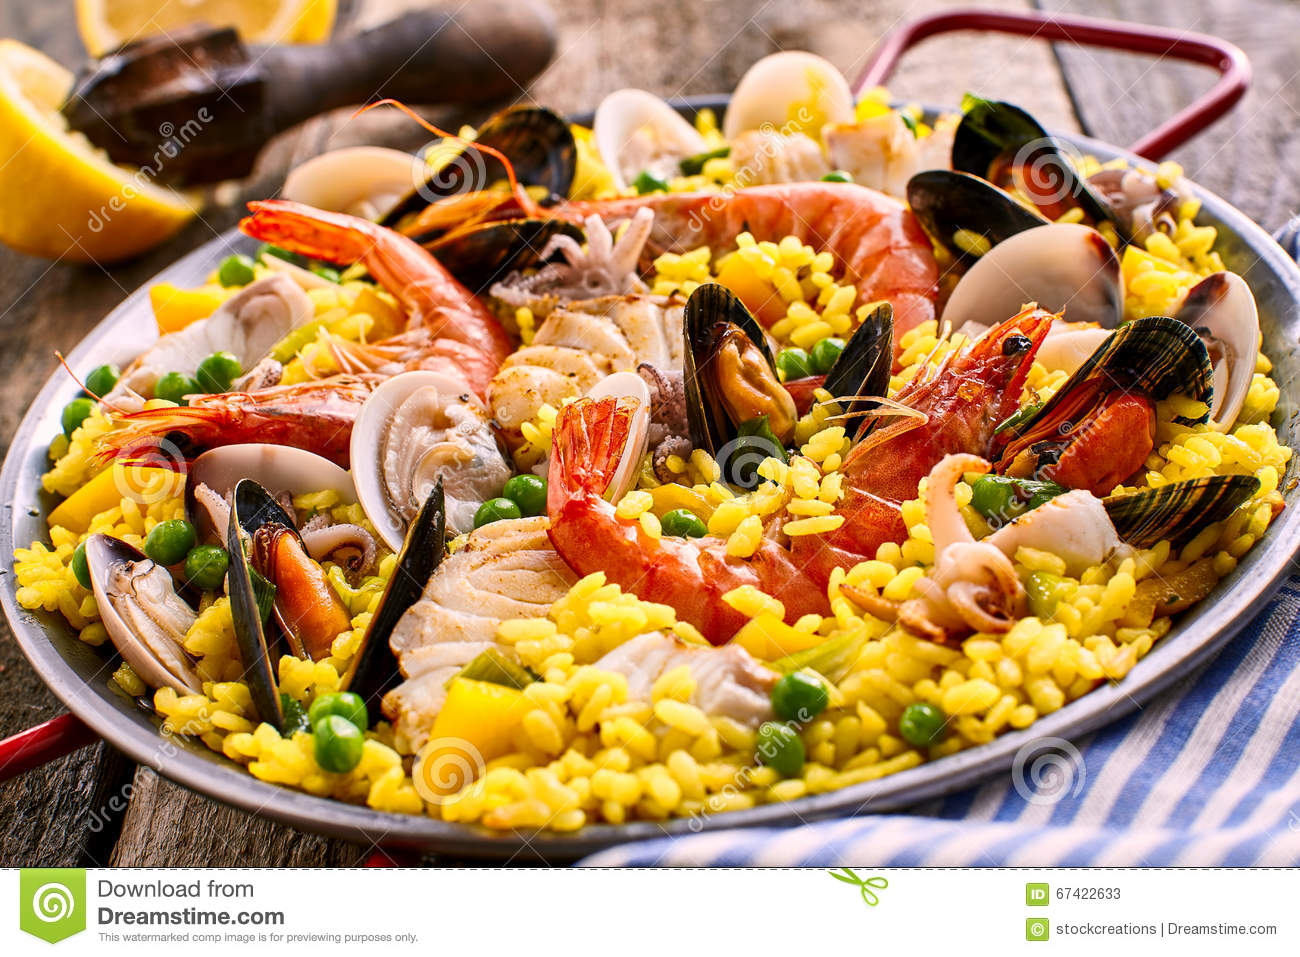 plat espagnol frais et color de paella de fruits de mer photo stock image 67422633. Black Bedroom Furniture Sets. Home Design Ideas